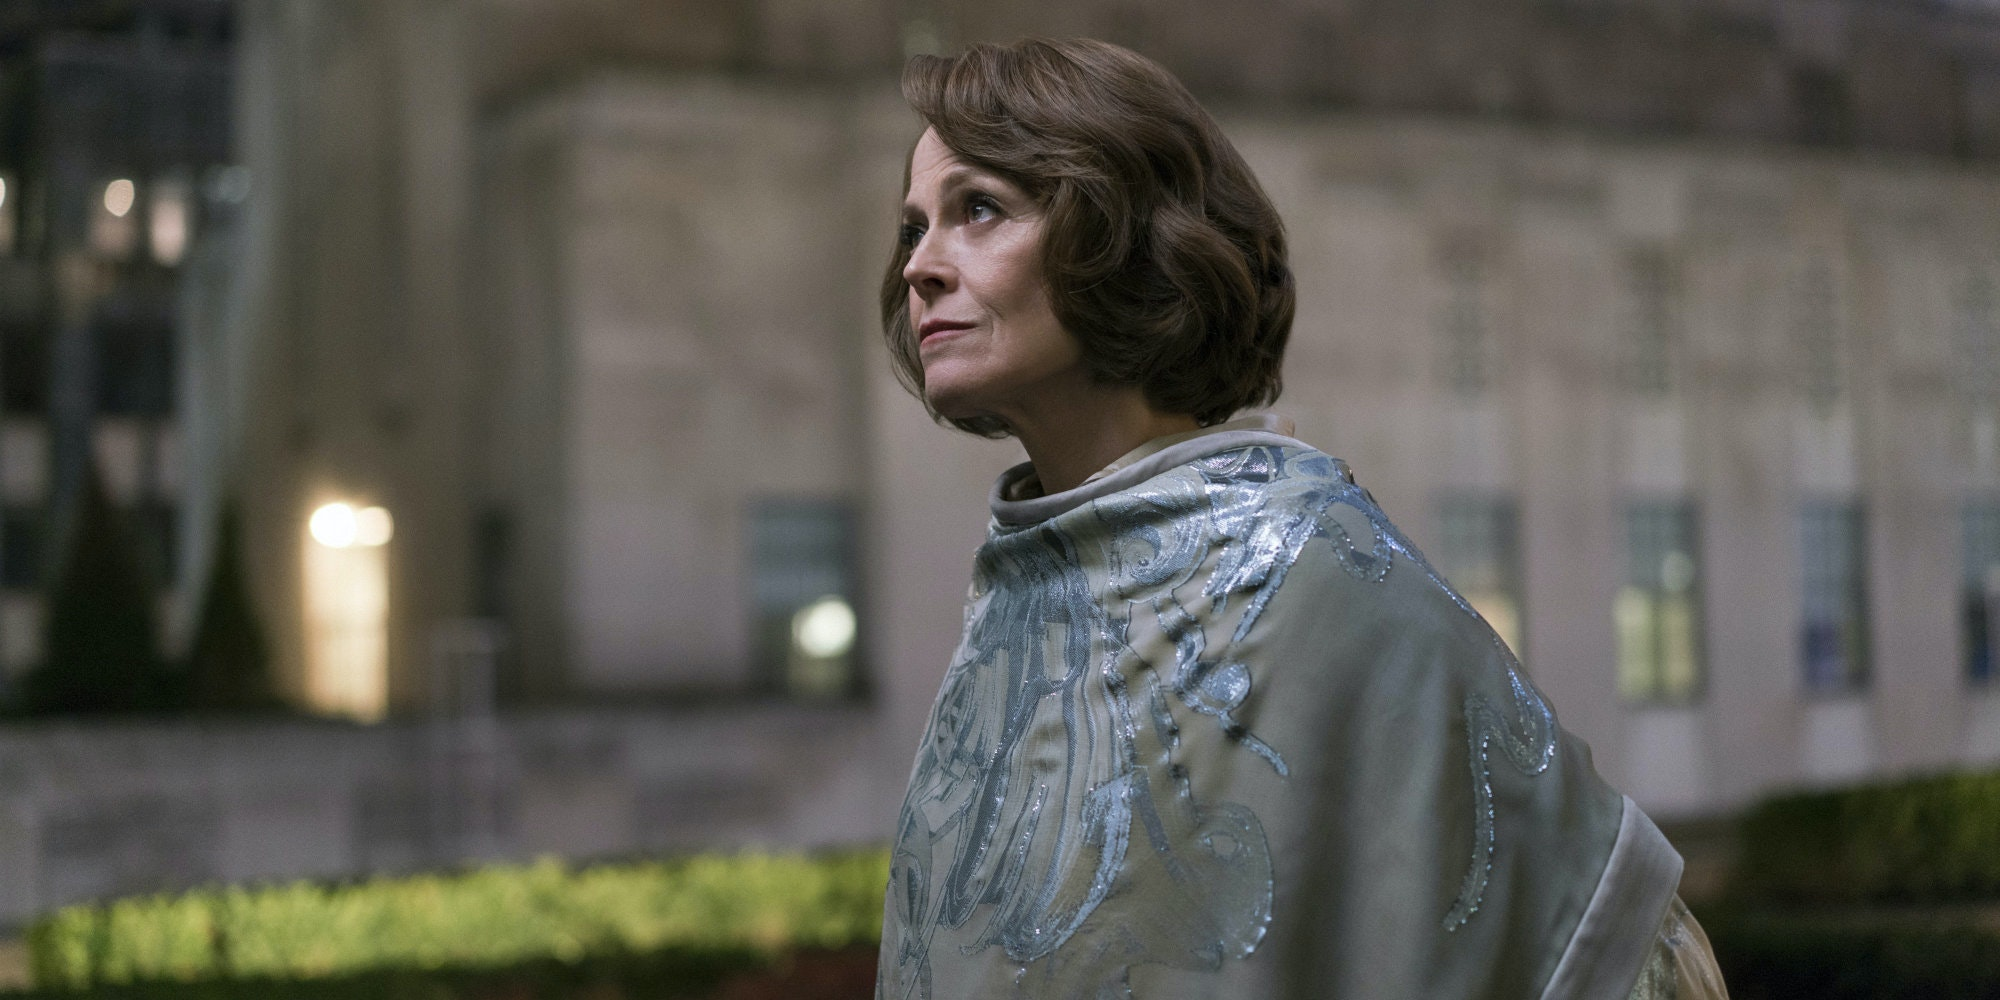 Who is sigourney weaver in the defenders